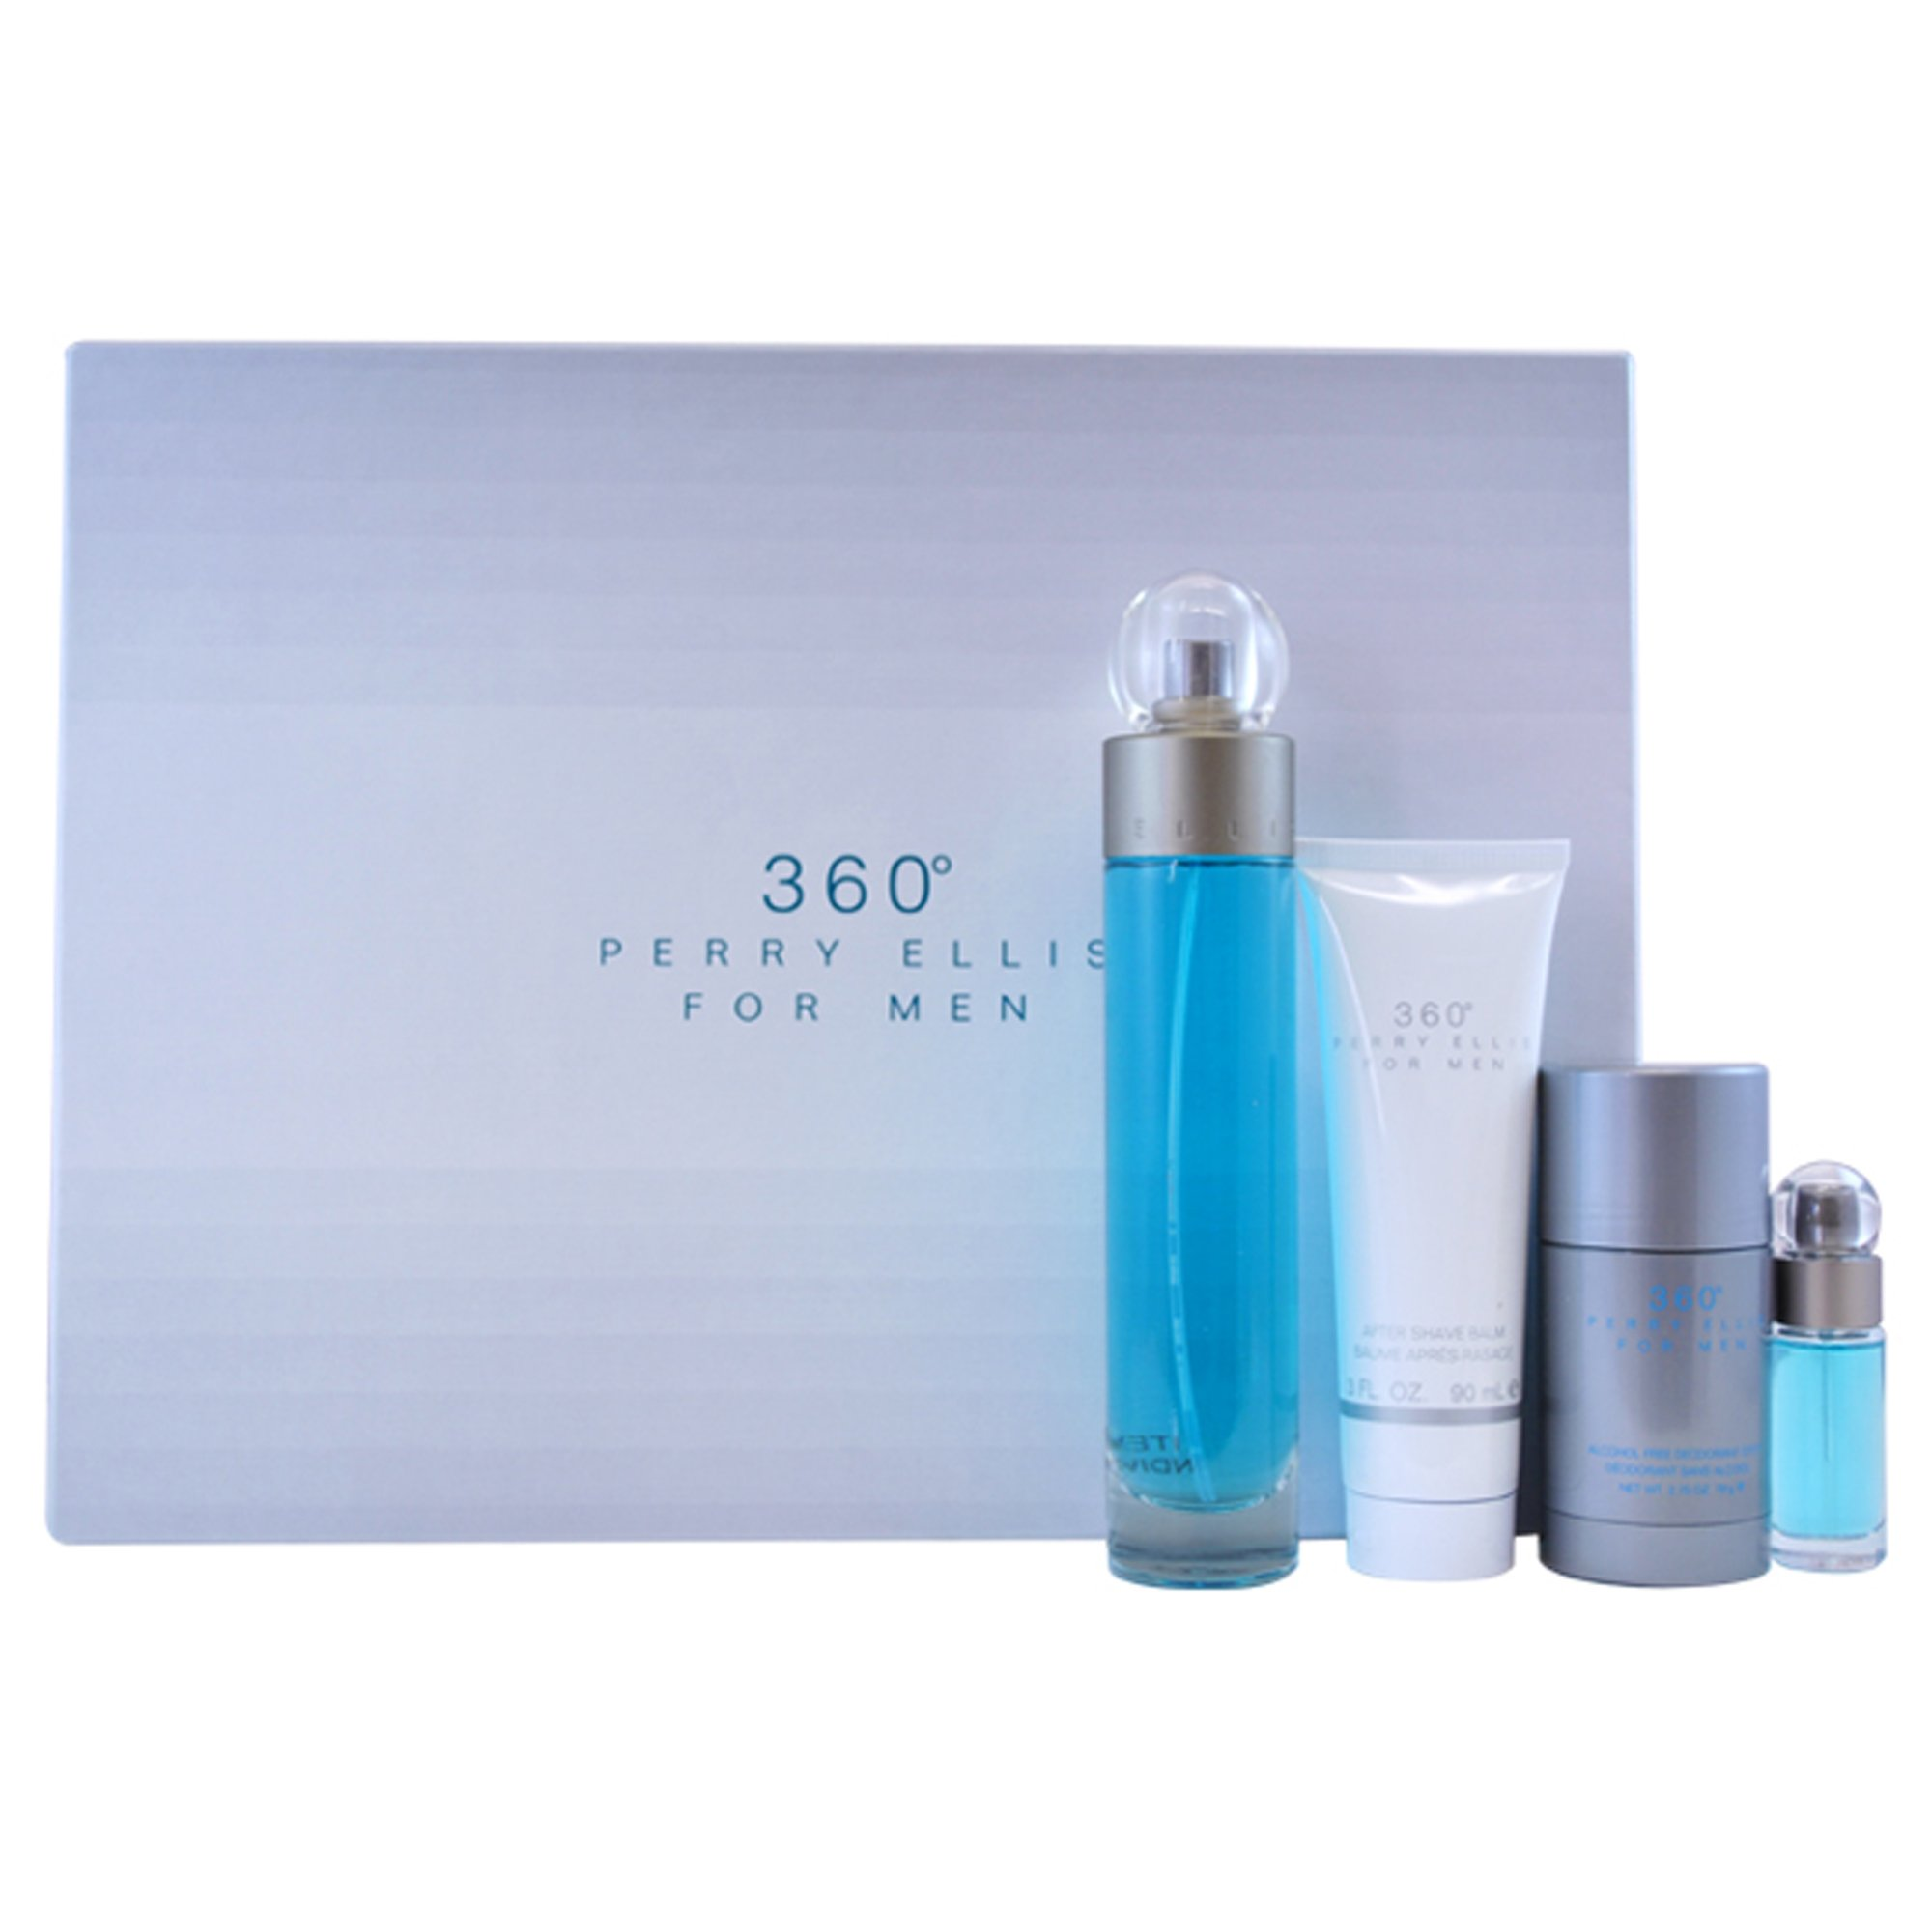 Perry Ellis 360 for Men | Gift Set with 3.4 oz Eau de Toilette Spray, 3 oz After Shave Balm, 2.75 oz Deodorant Stick, and 0.25 fl oz Mini EDT Spray | Scent Notes of Exotic Wood and Citrus